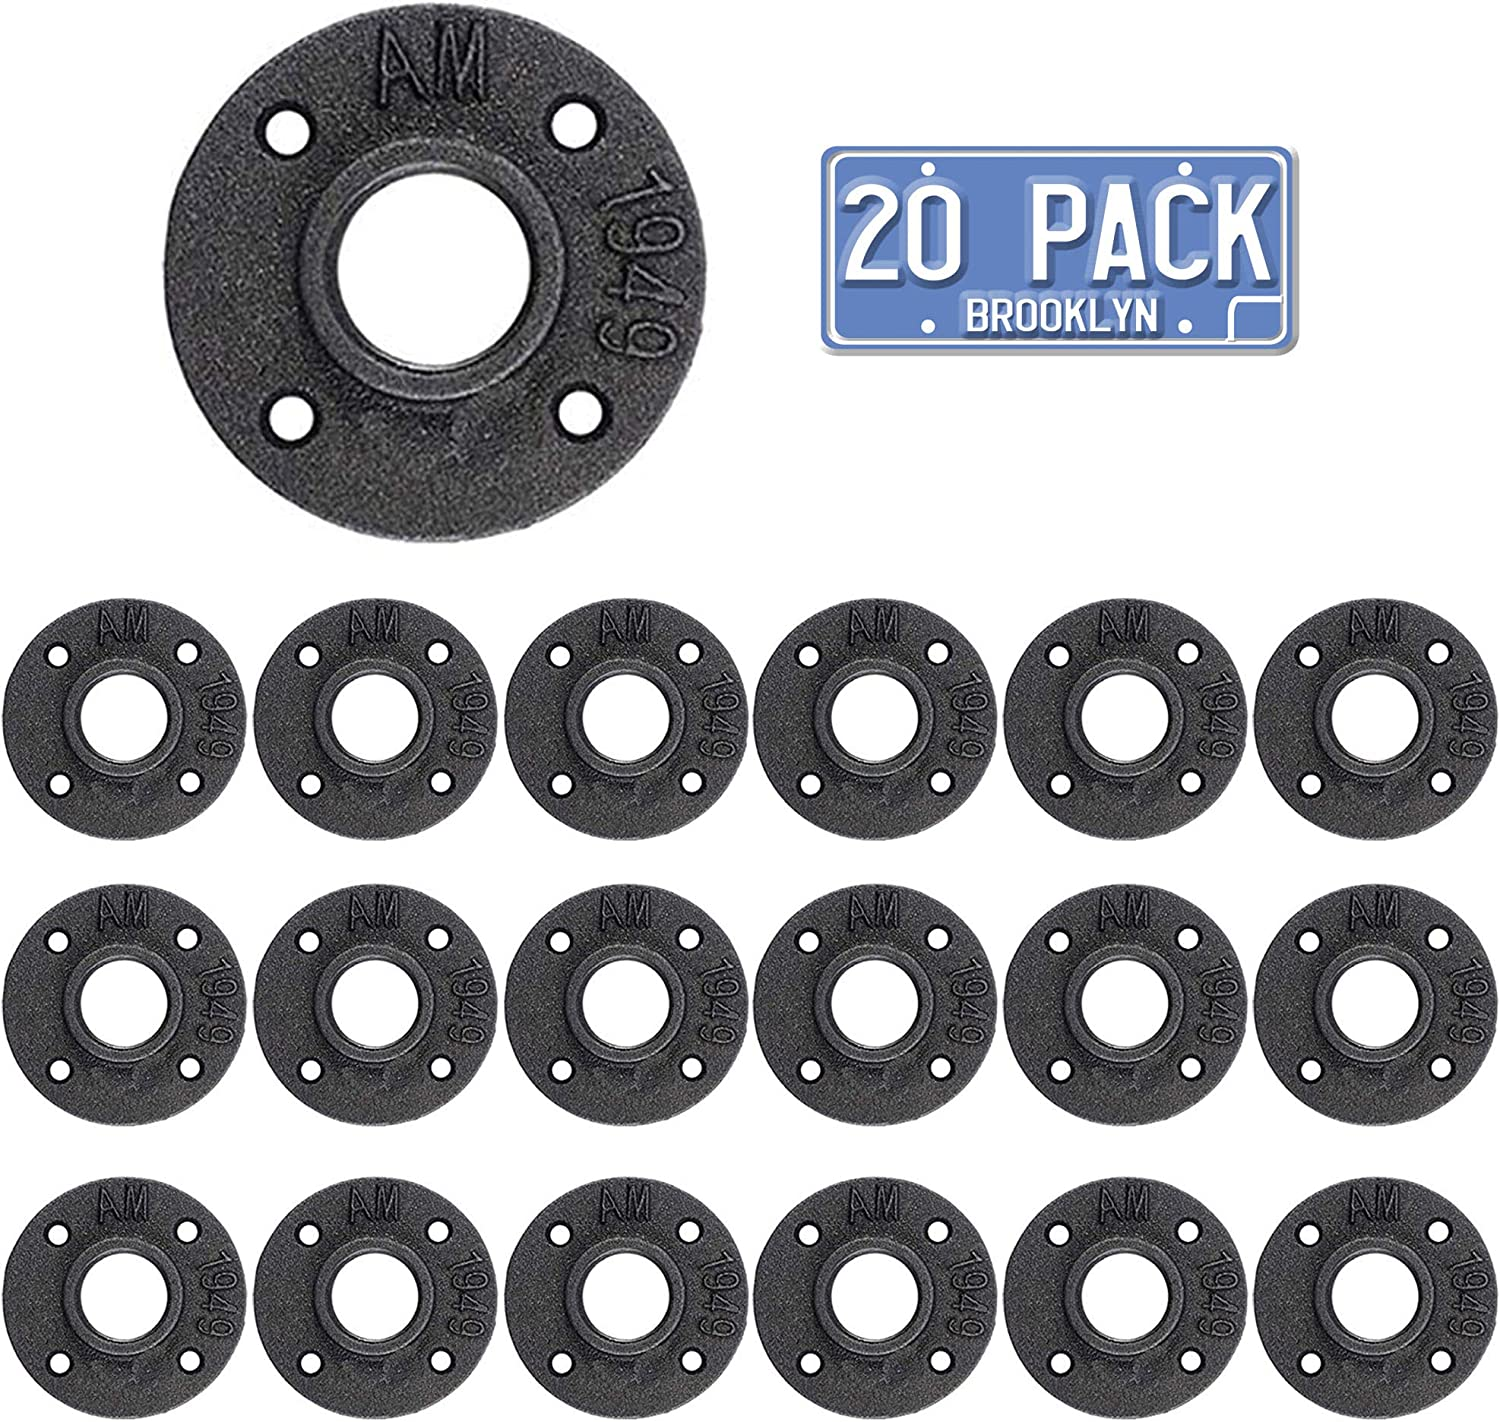 Brooklyn Pipe 20 Pack 1/2 Floor Flanges 4 Bolts | 1/2 Inch Threaded Hole Flange | Iron Metal Flange | Industrial Pipe Decor | Iron Flange Pipe Fittings